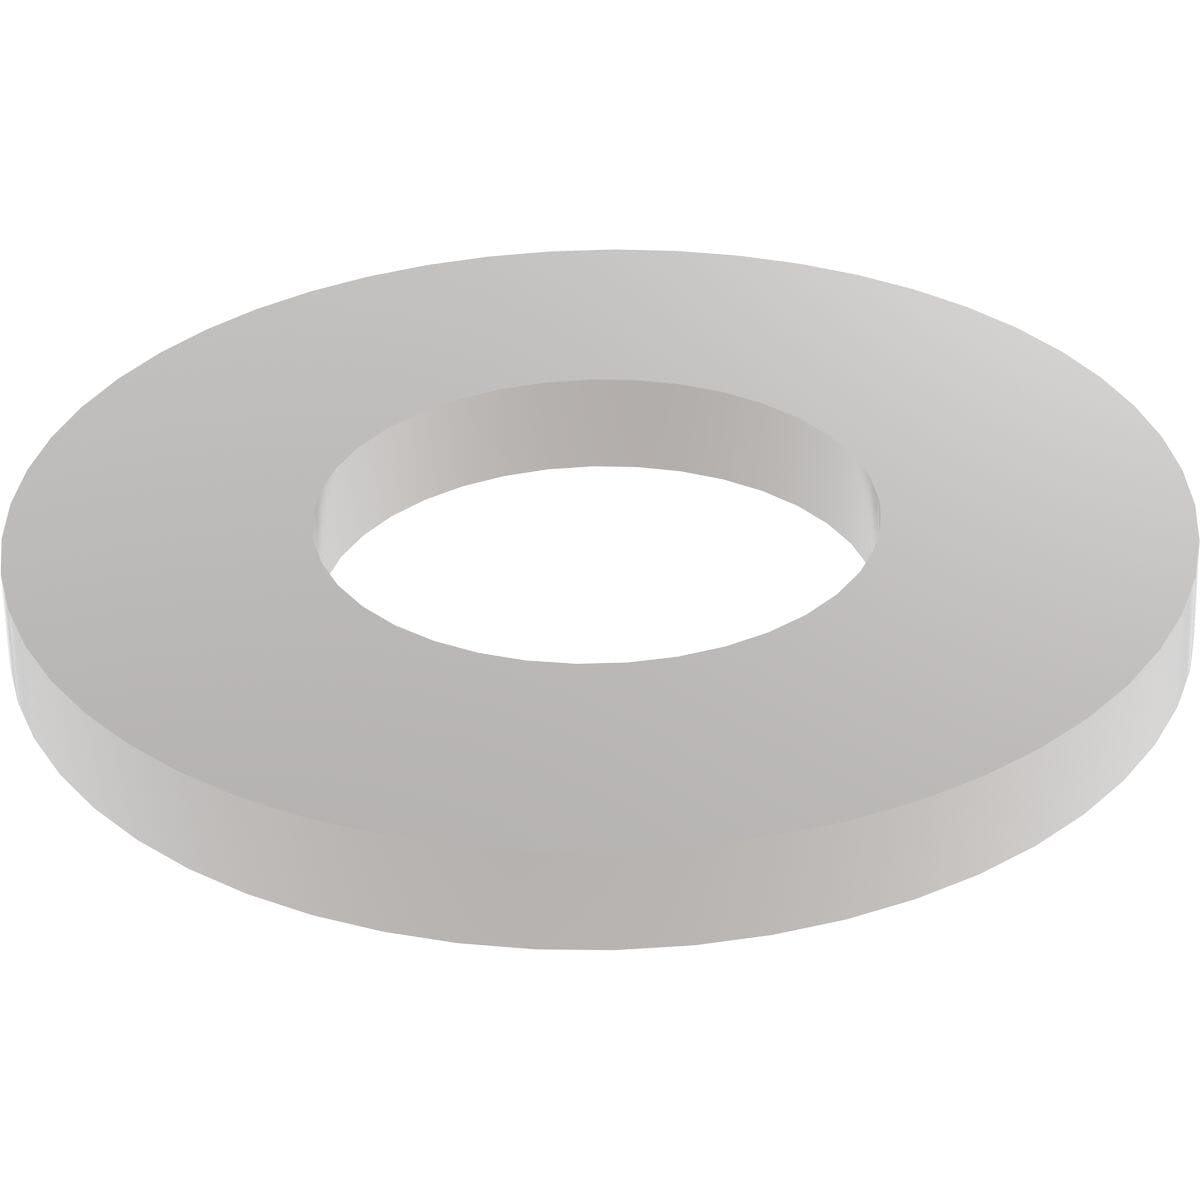 M24 24mm STAINLESS STEEL A2 FORM A FLAT WASHERS TO FIT SCREWS BOLTS DIN 125 UK